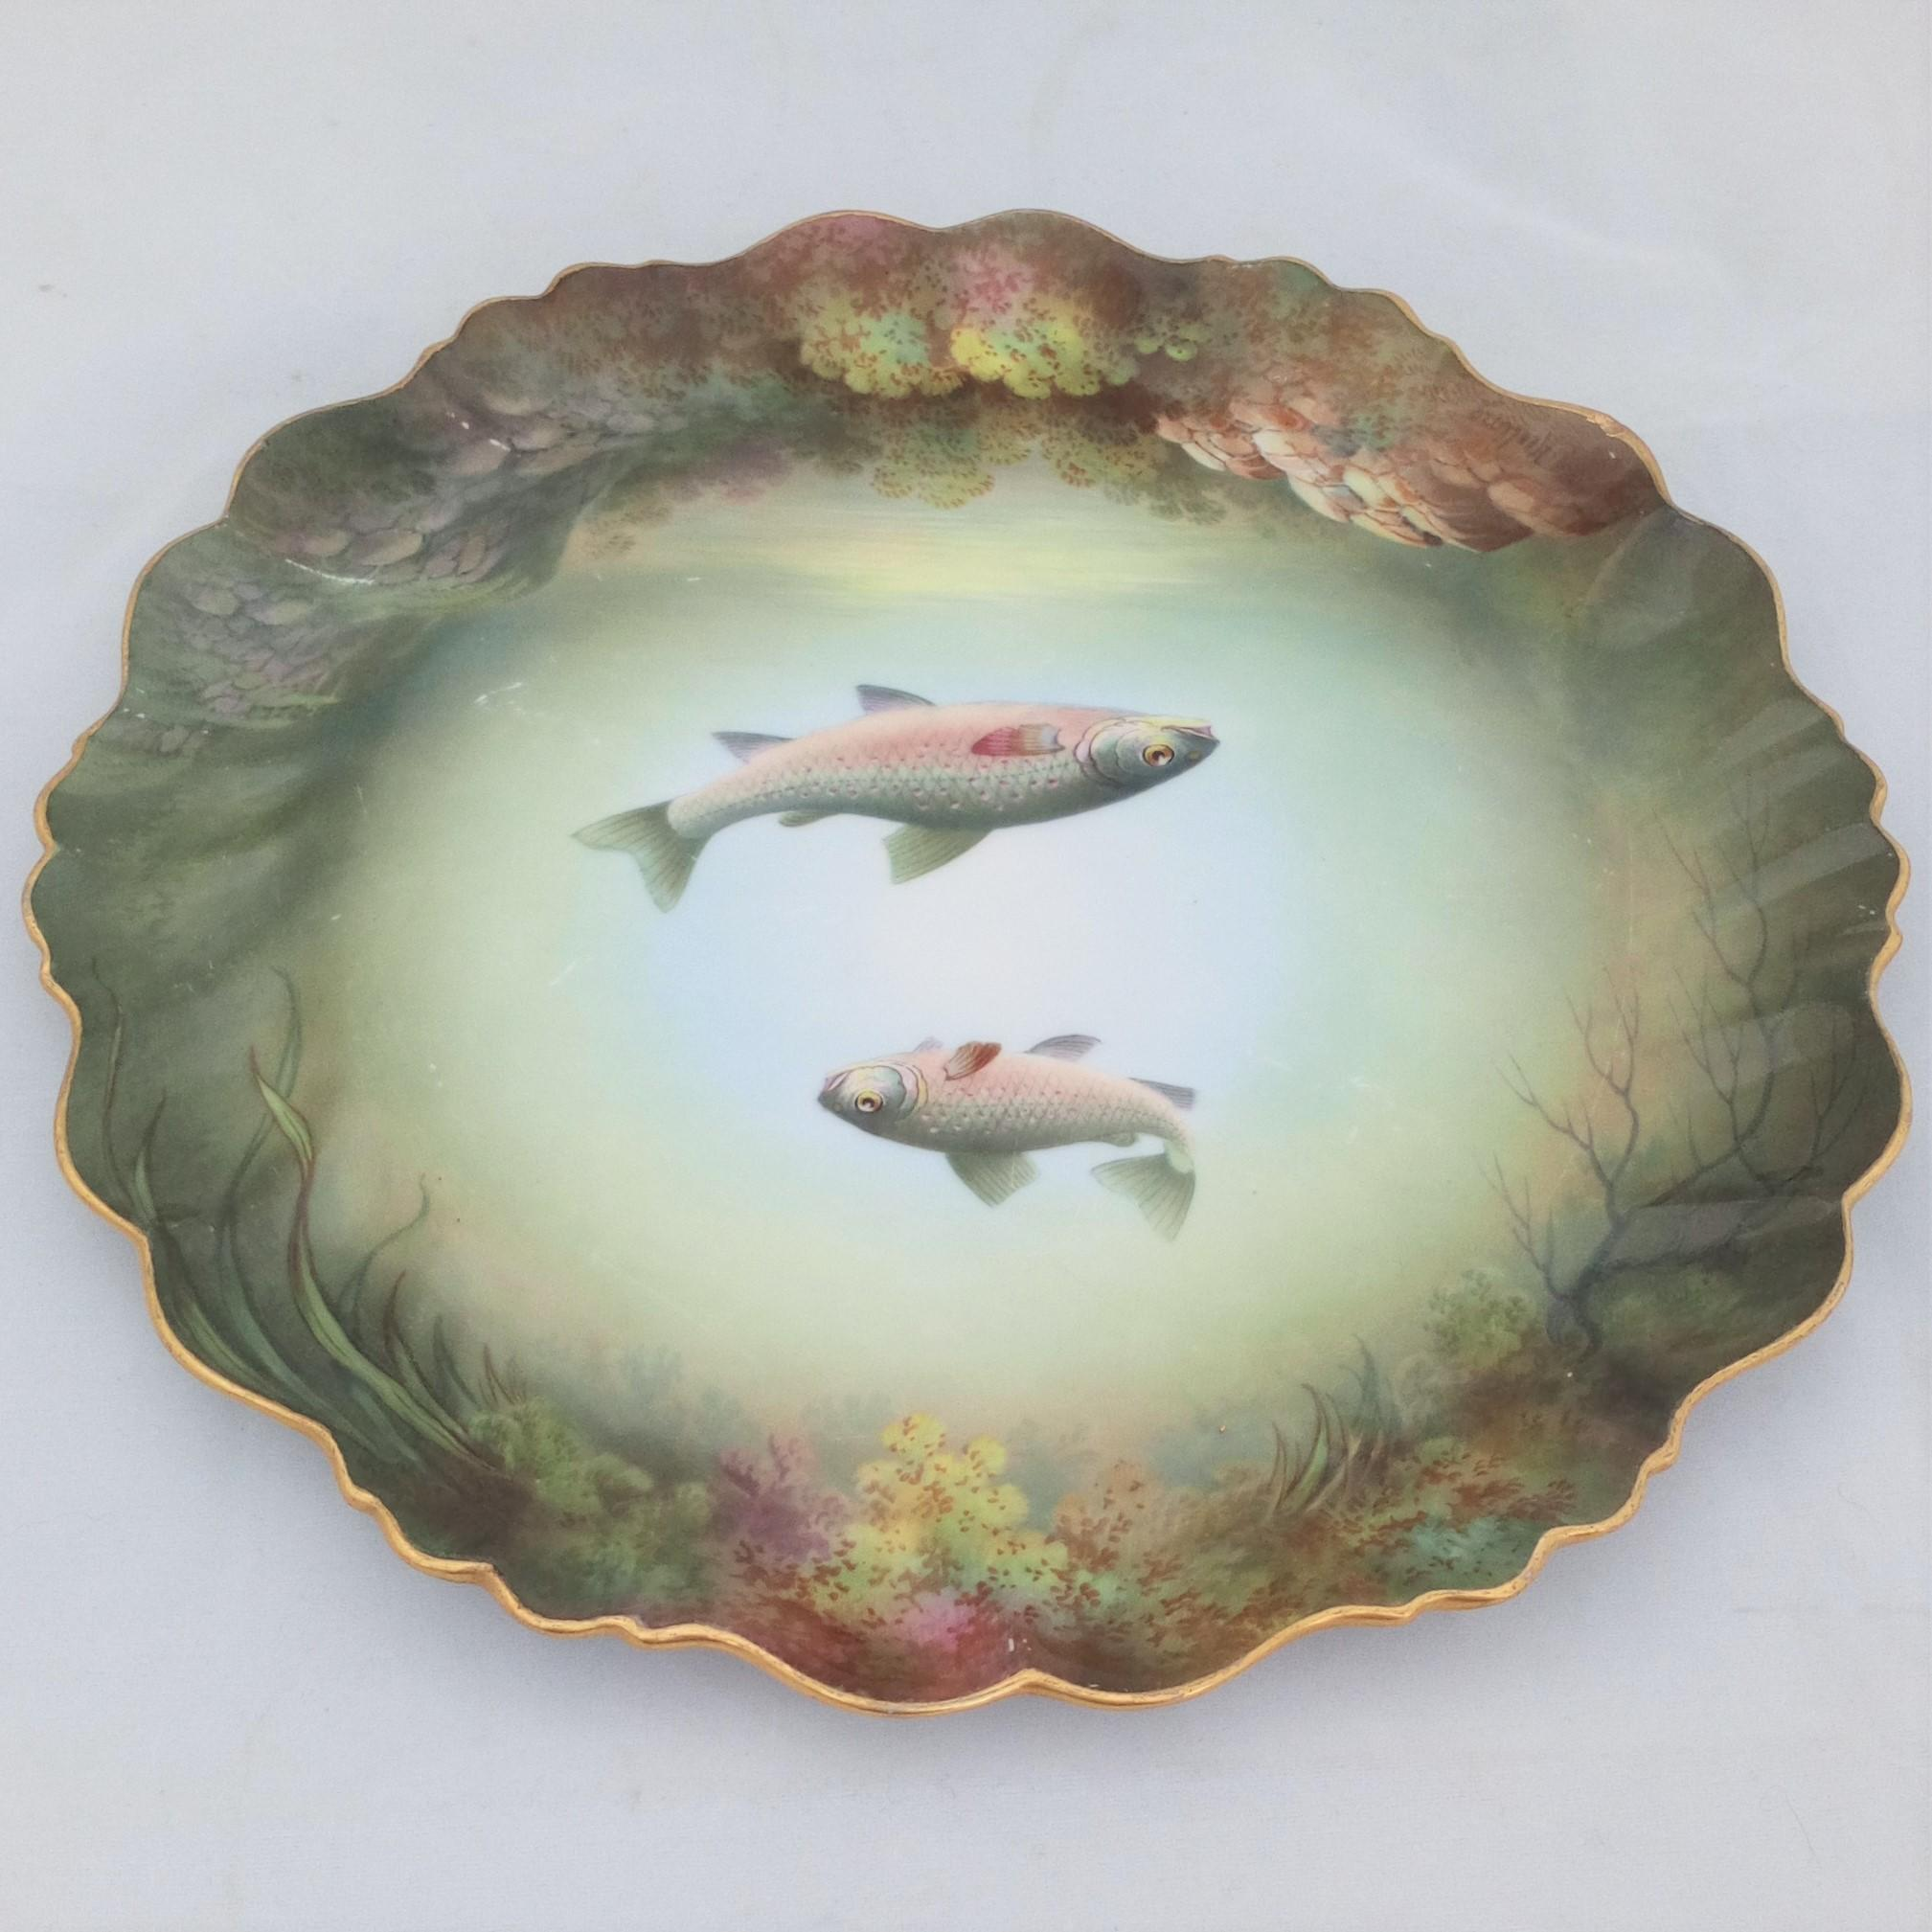 Antique Hand Painted Paragon China Plate Windermere Char Fish R.J Keeling c 1905